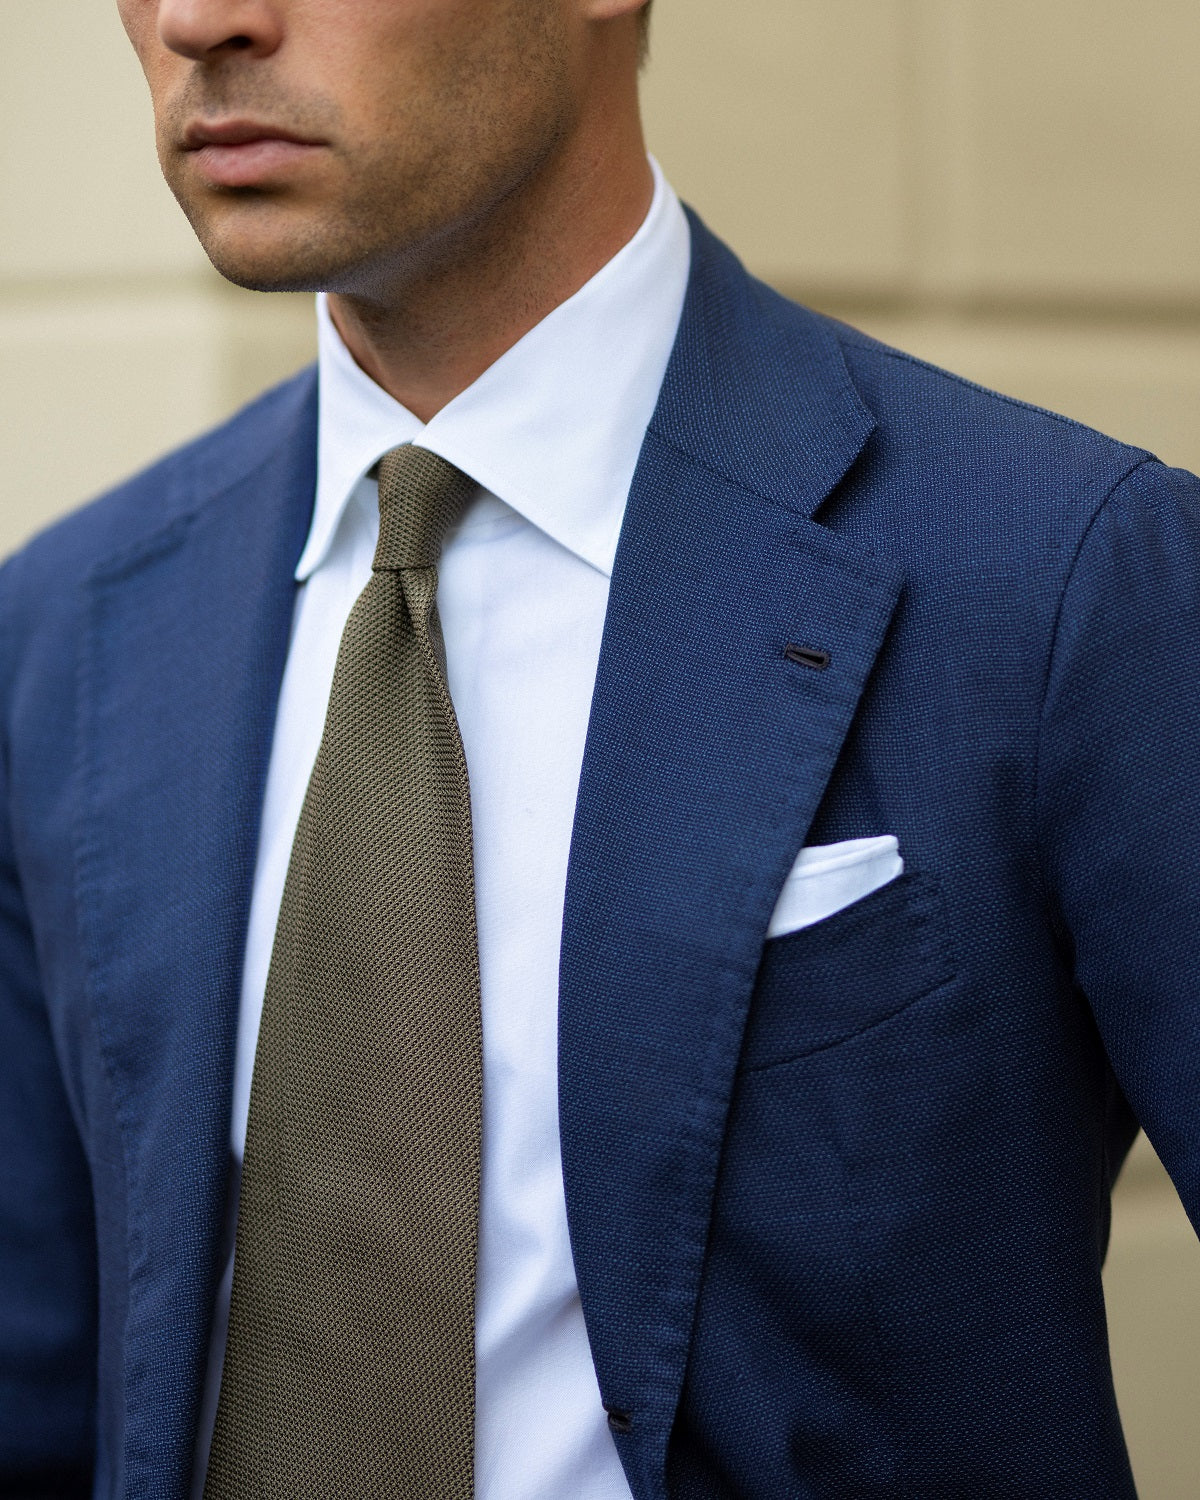 Handmade Neapolitan jacket with grenadine tie